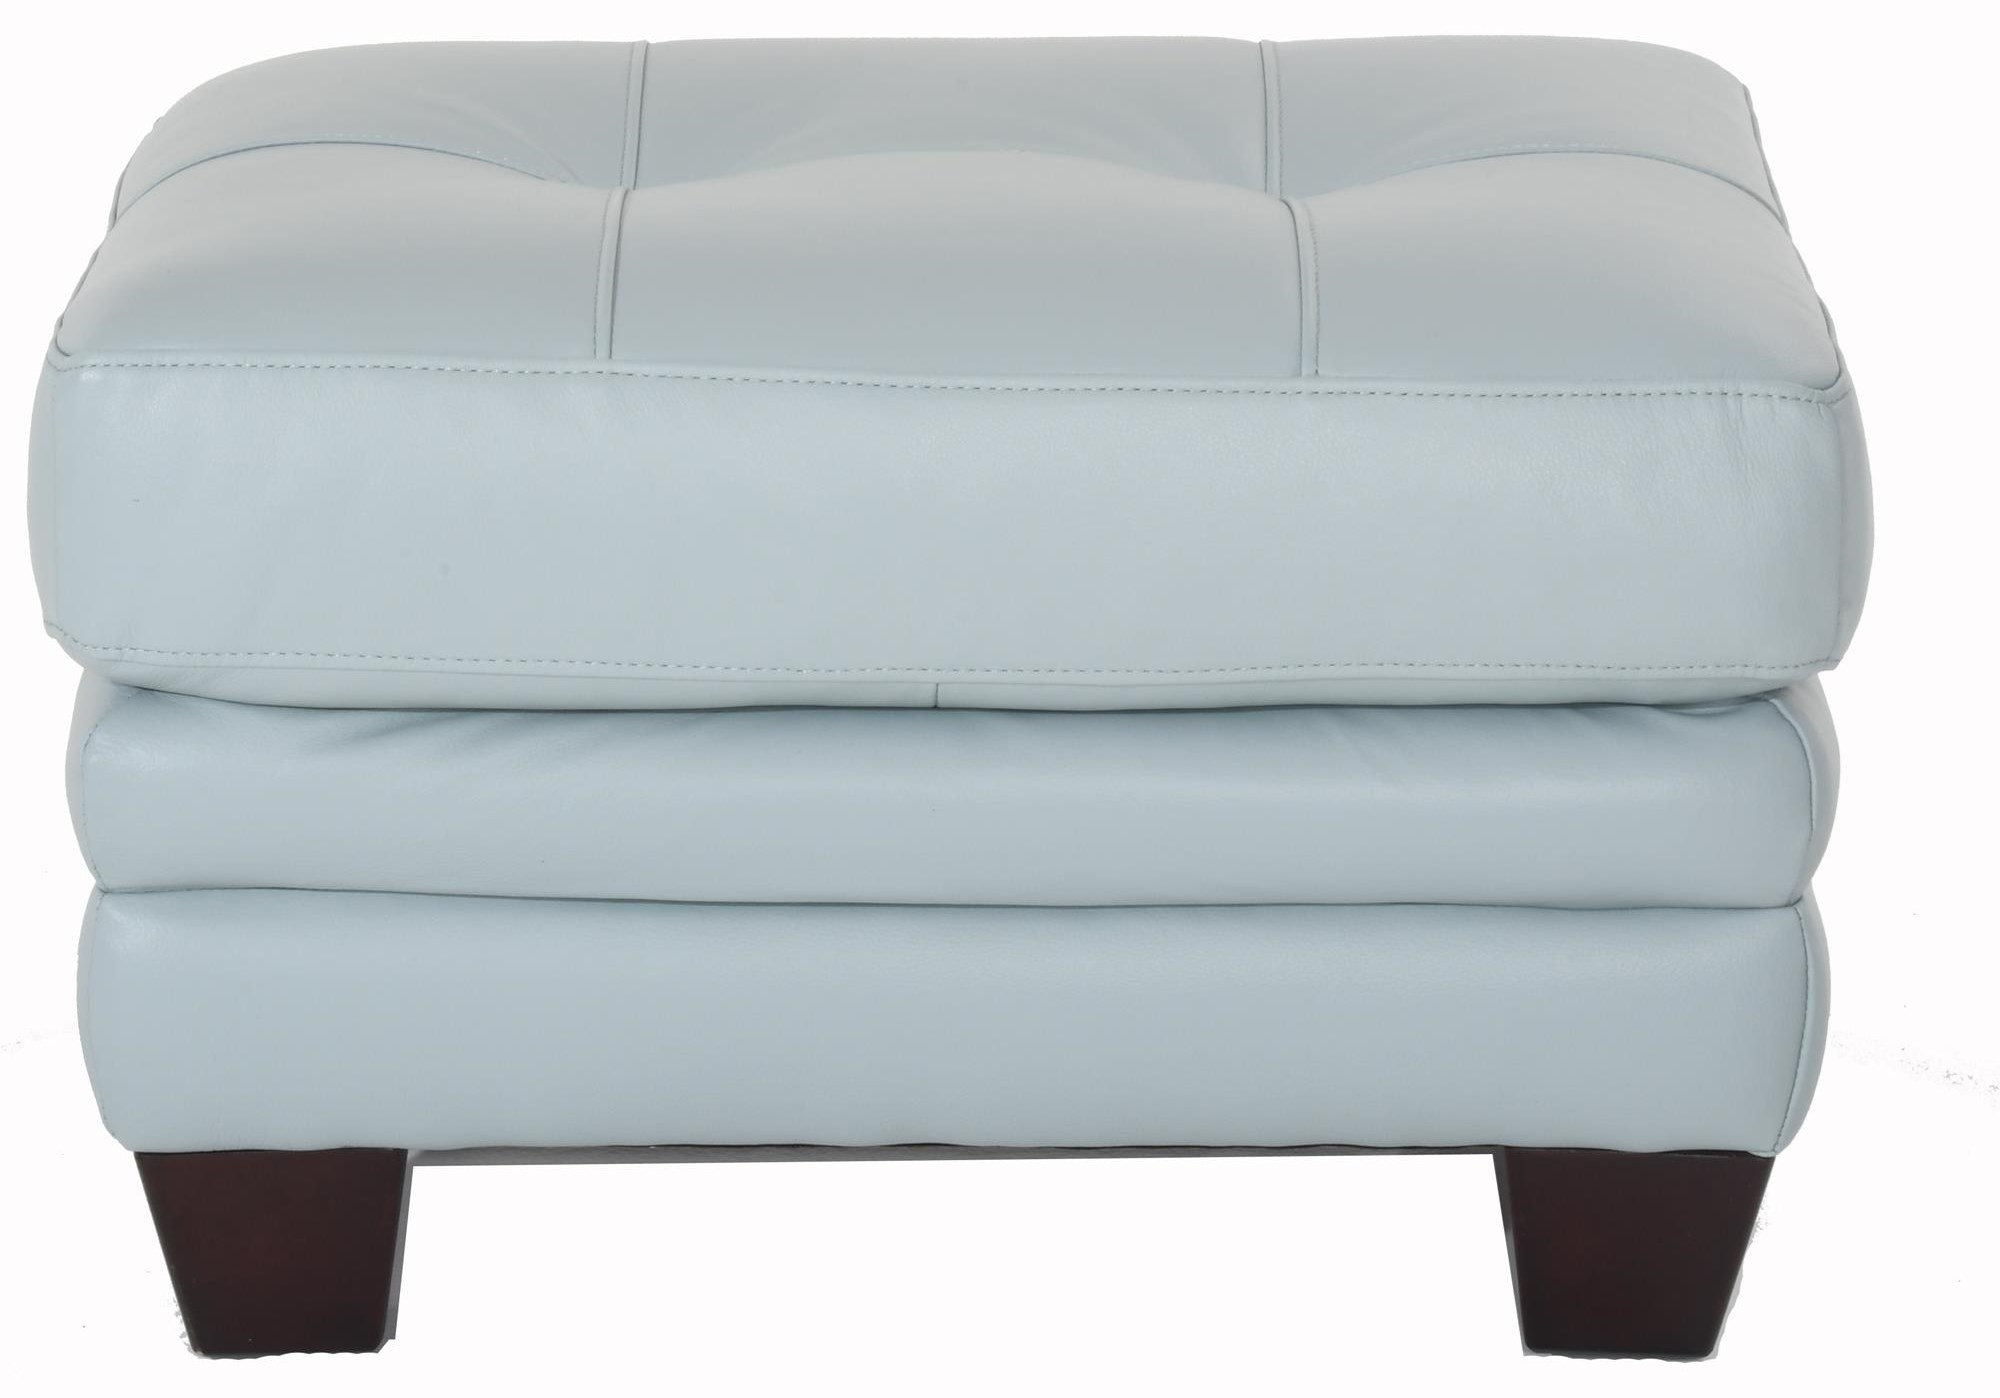 8511 Leather Ottoman by Futura Leather at Baer's Furniture